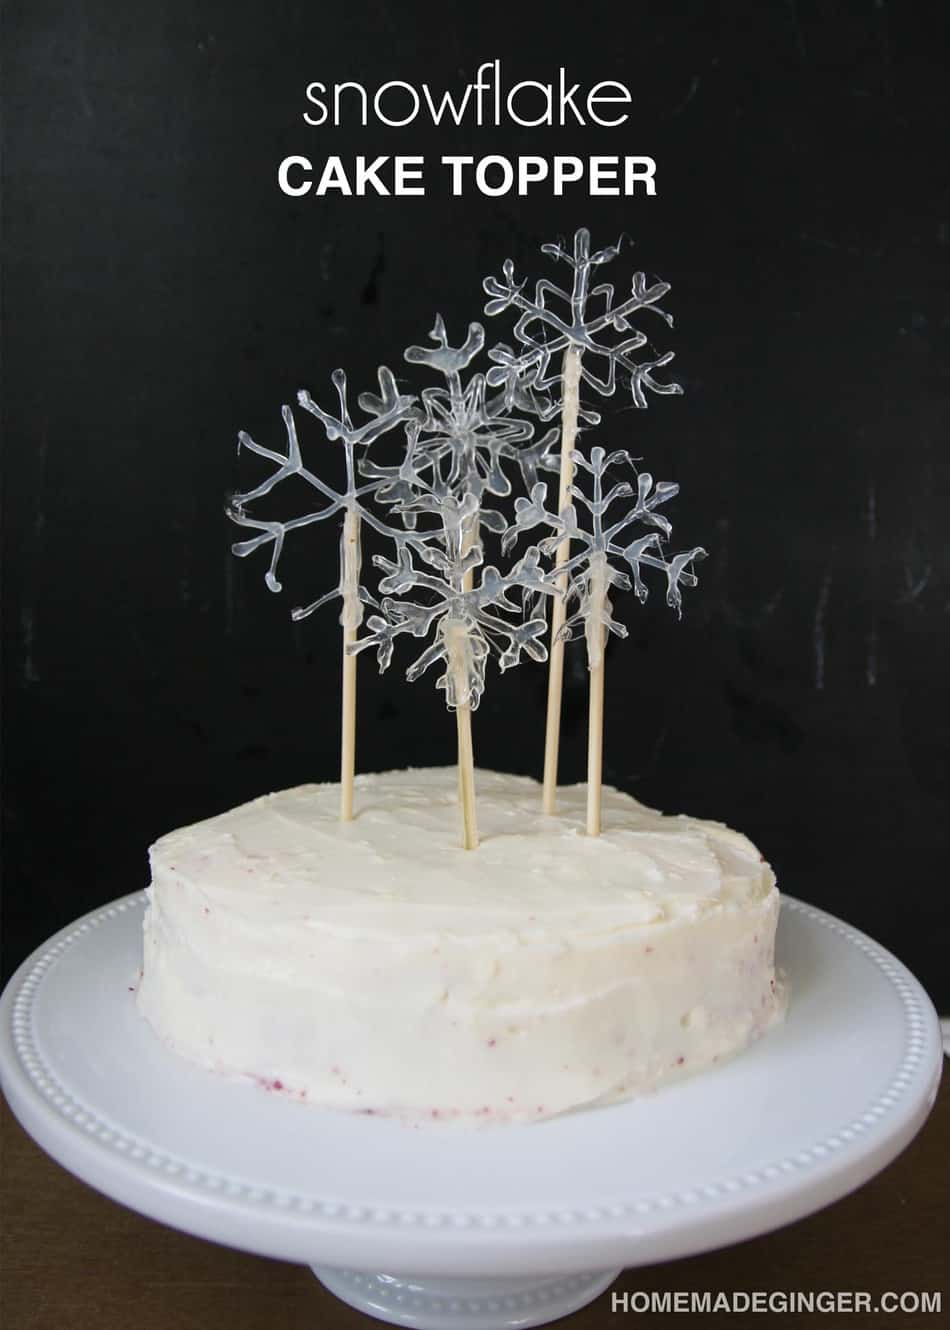 Make some snowflake cake toppers using hot glue. This will make a beautiful  DIY cake